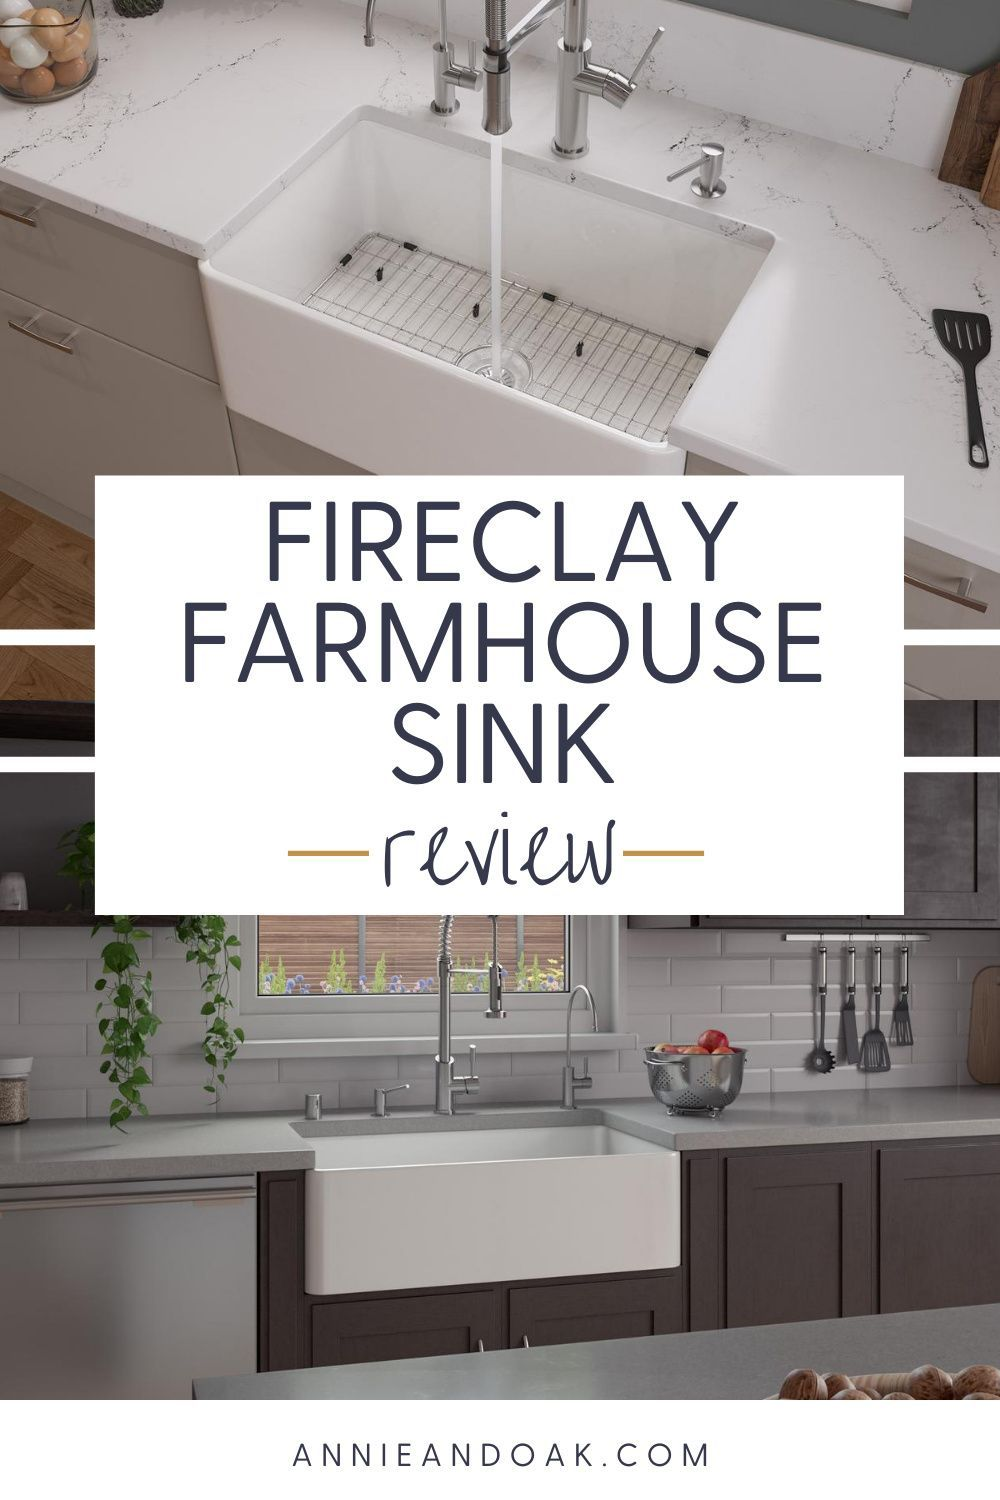 Fireclay farmhouse sink review Truth you've been waiting